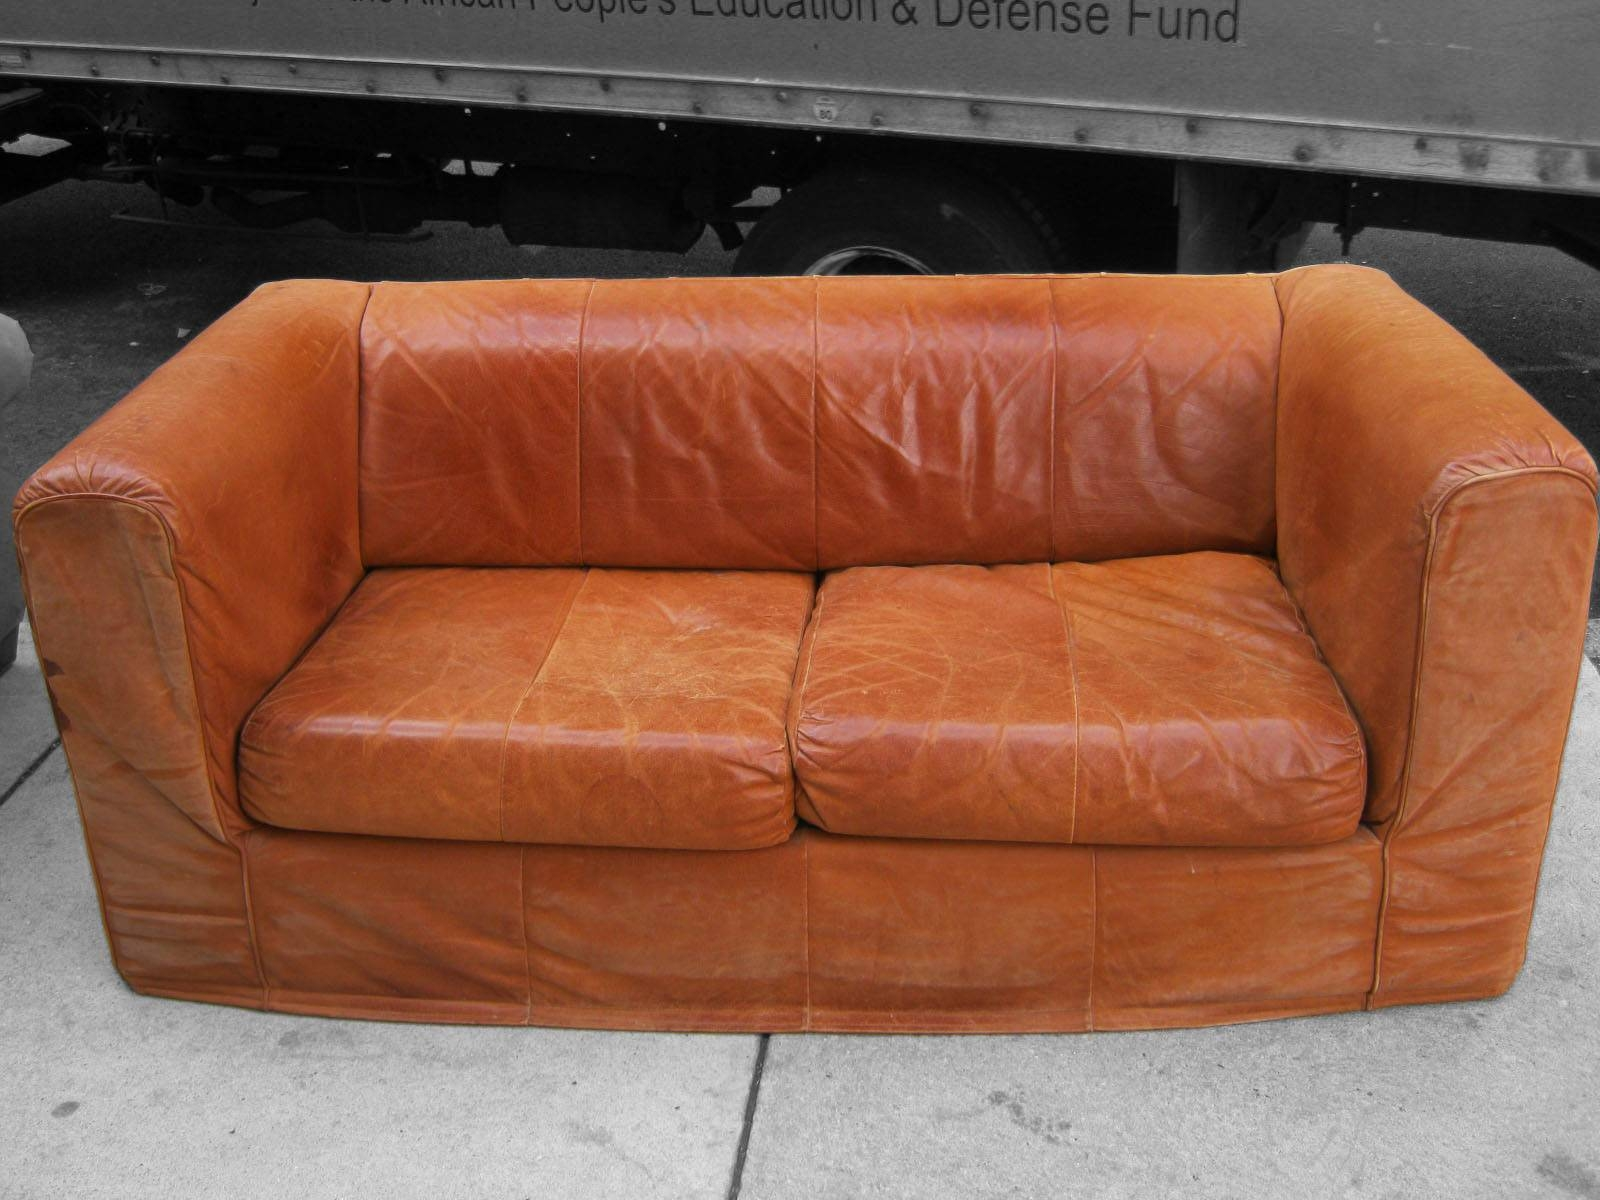 Uhuru Furniture & Collectibles: Camel Colored Leather Sofa - Sold with Camel Colored Leather Sofas (Image 15 of 15)